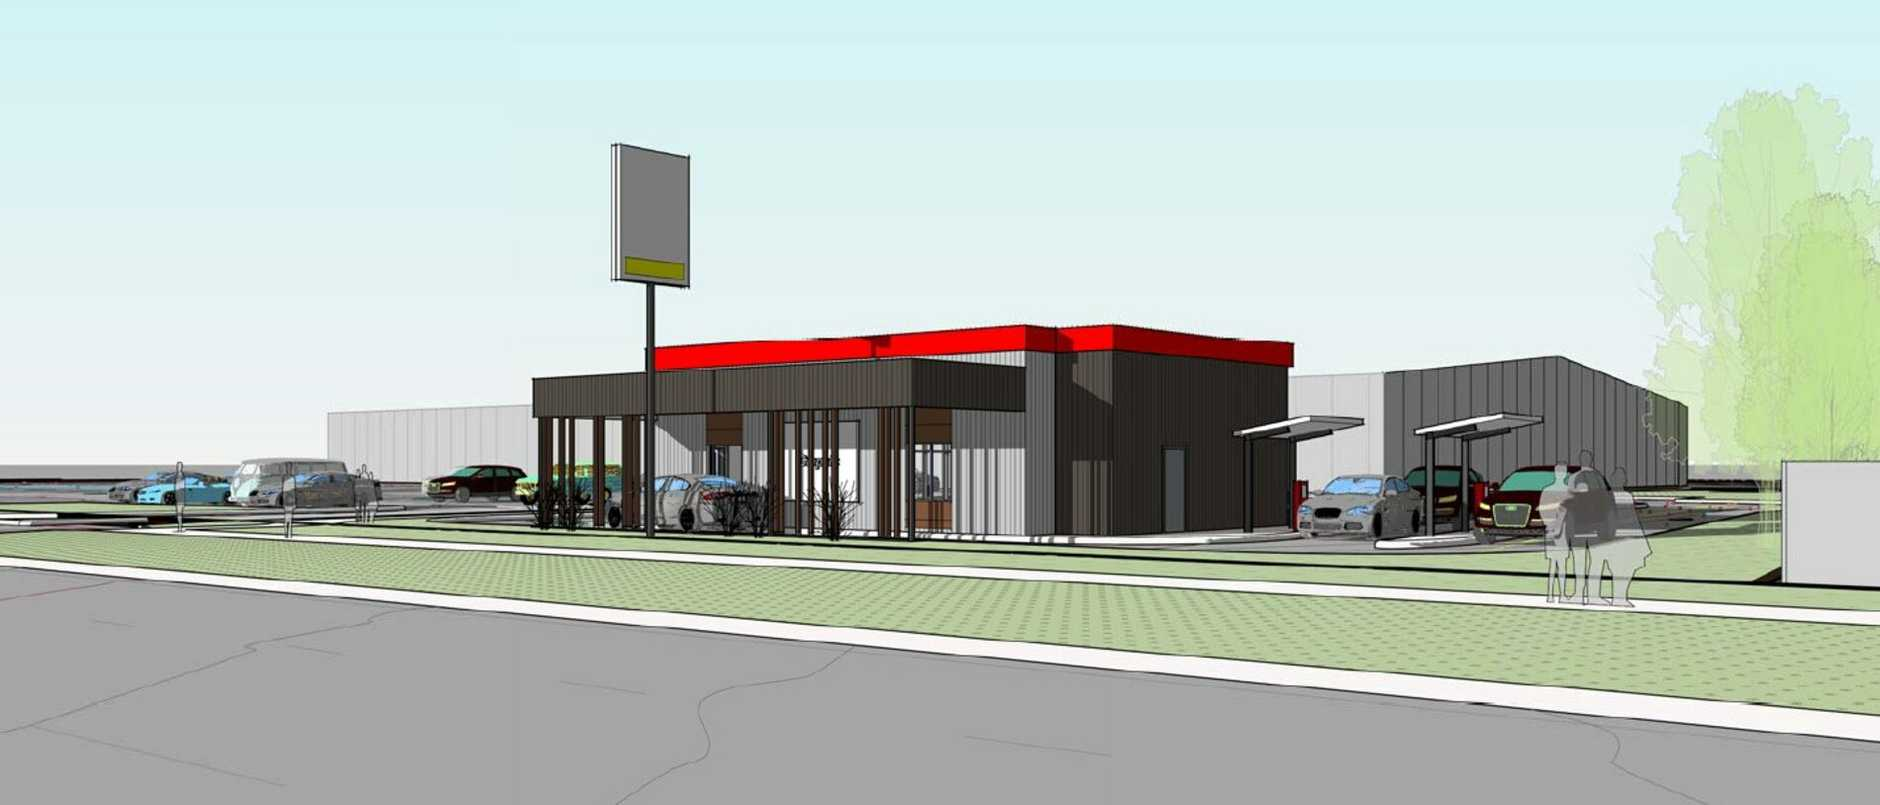 Plans for the fast food building.